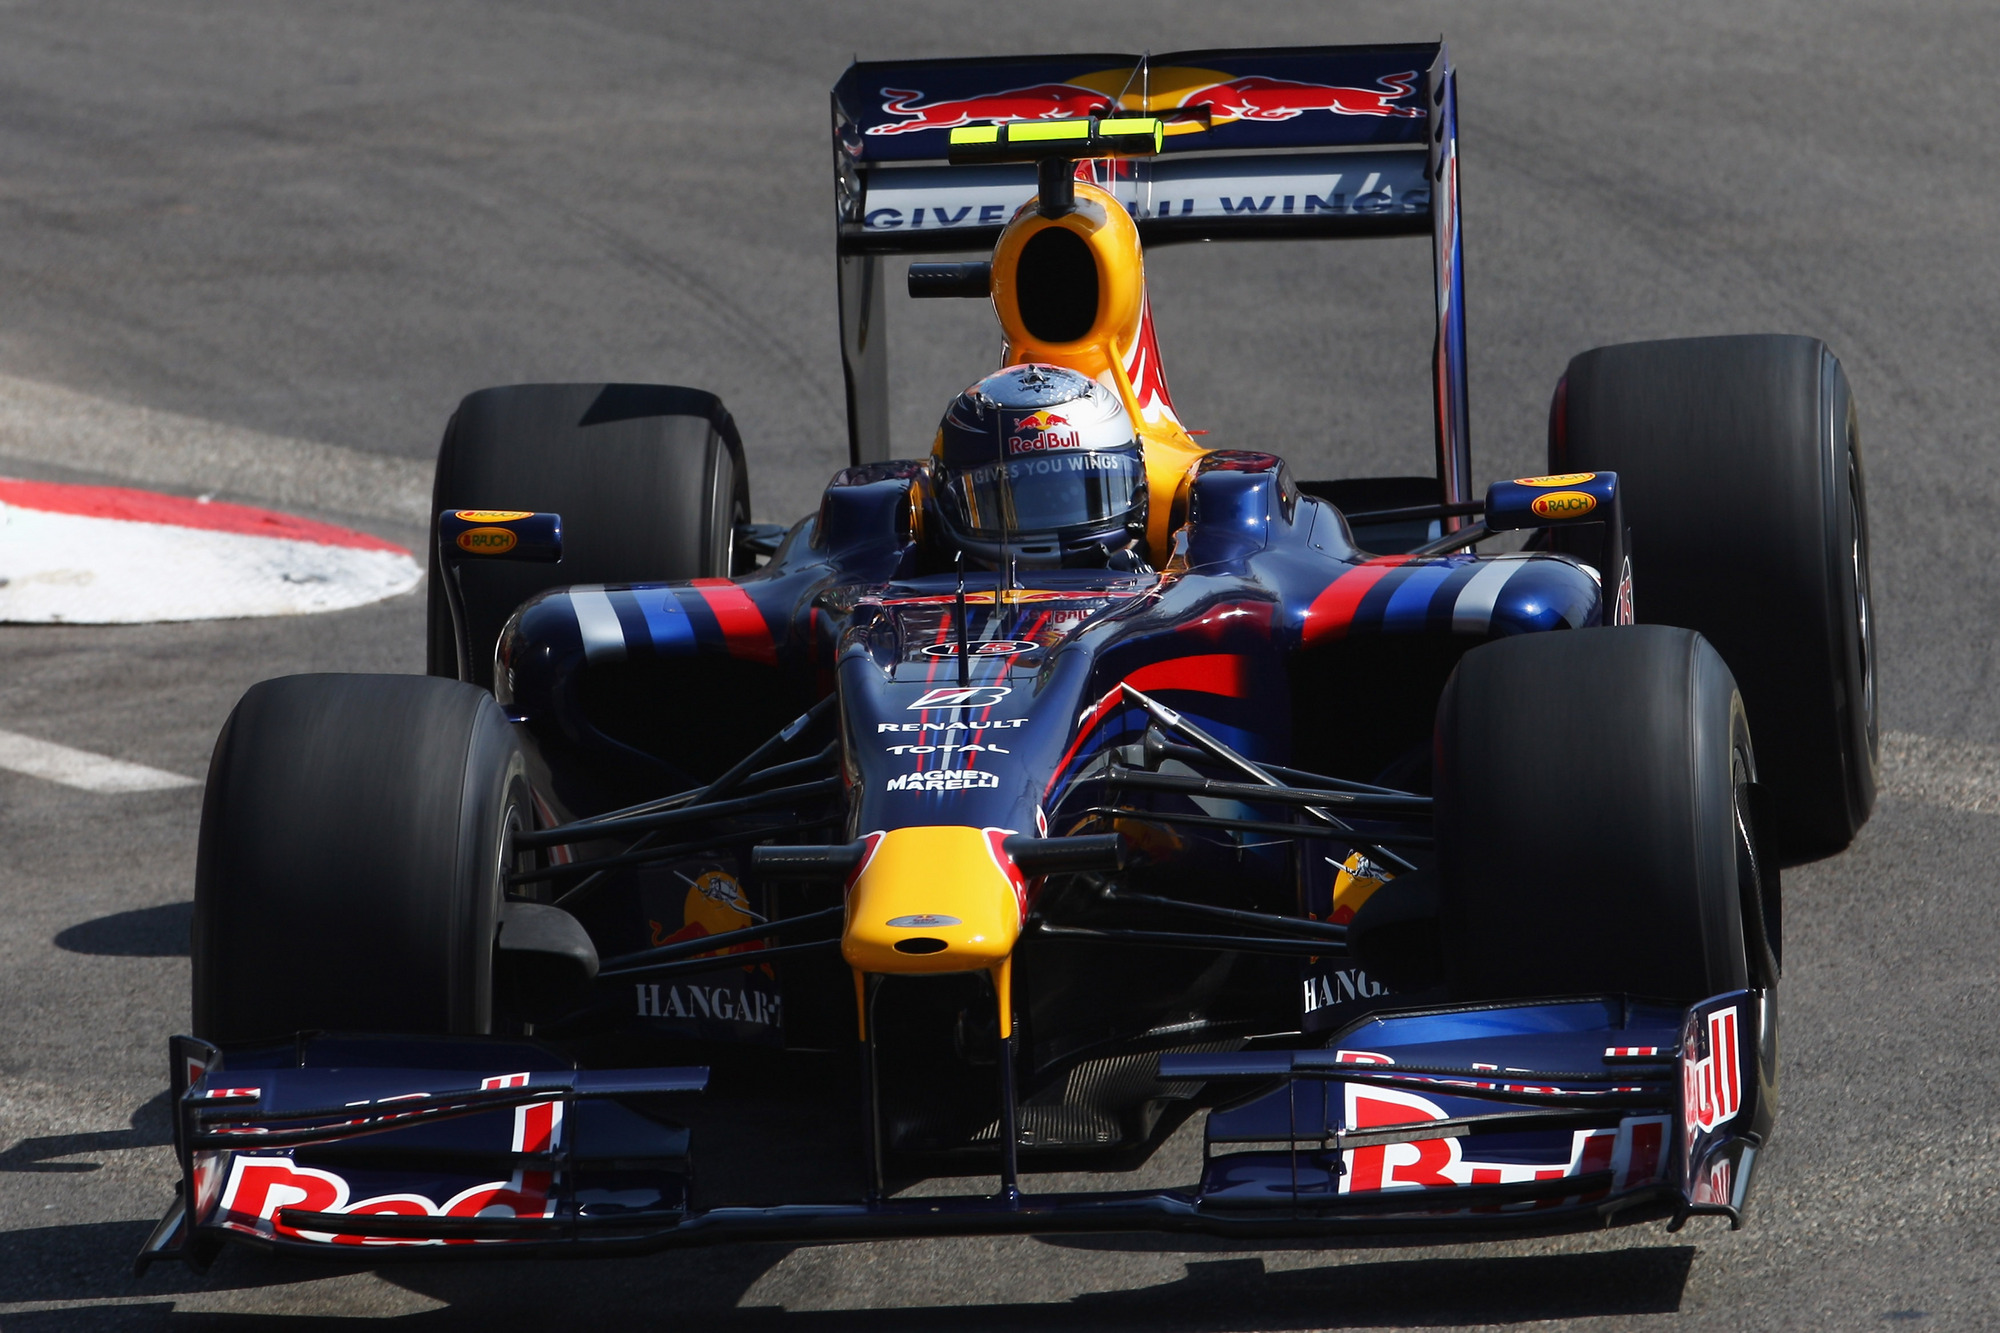 Red bull rb5 photo - 6